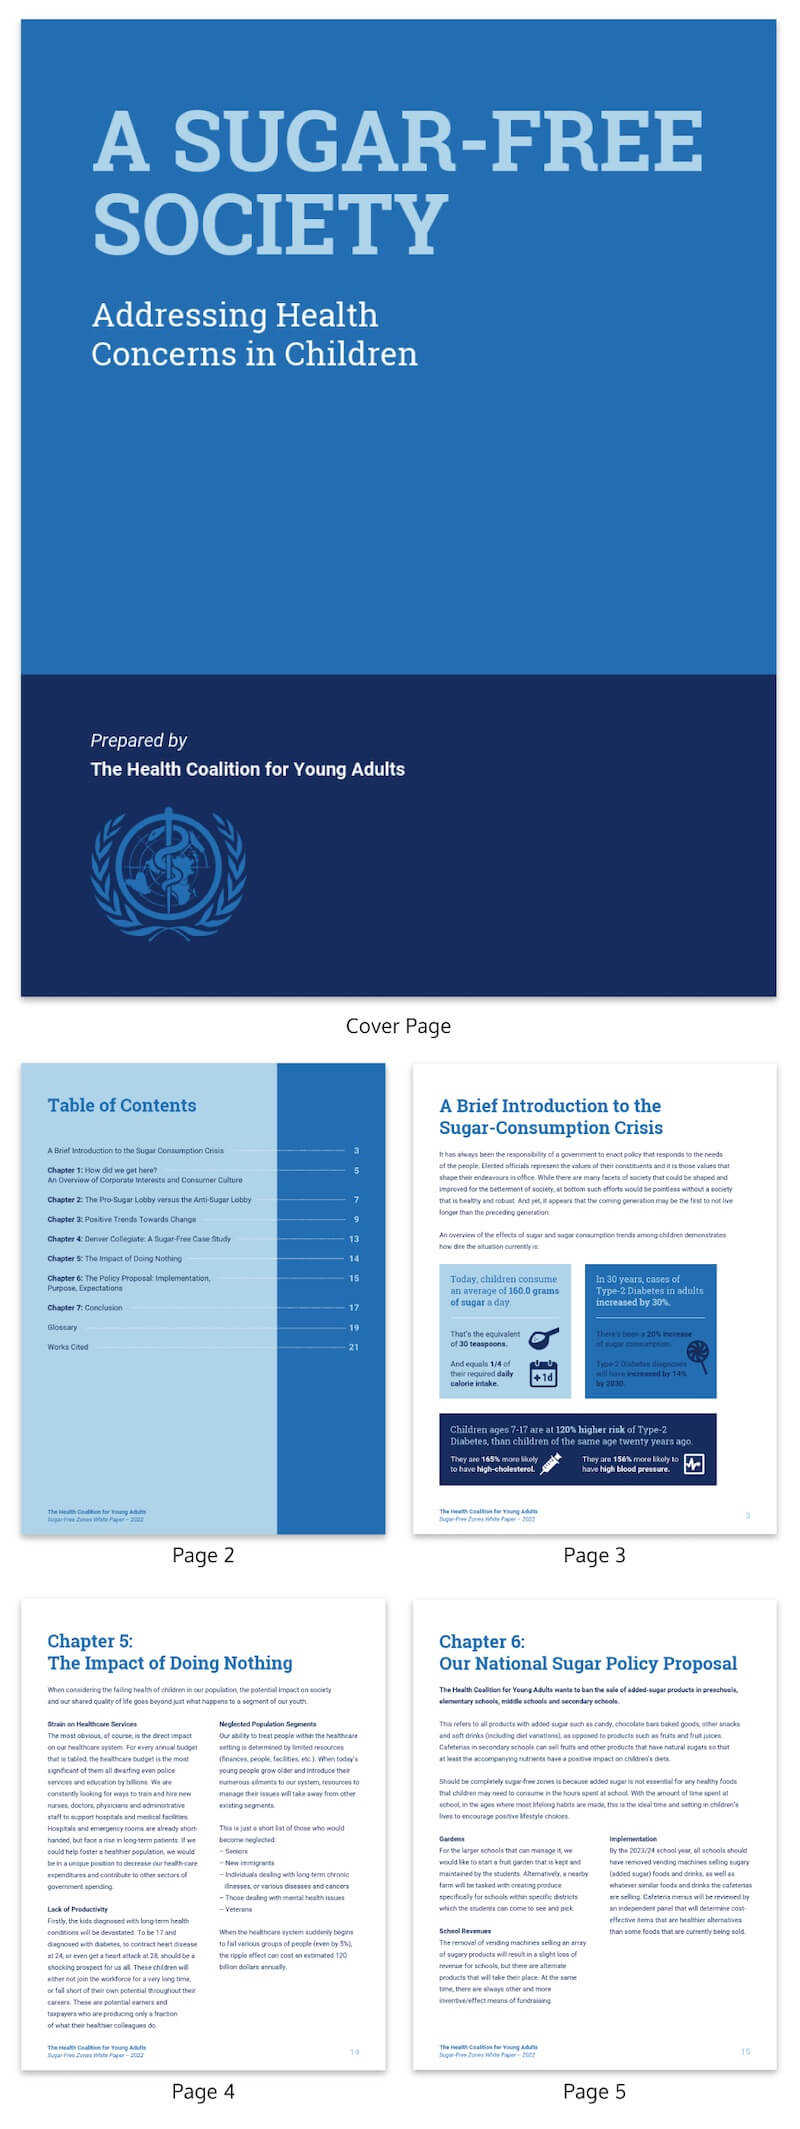 30+ Business Report Templates Every Business Needs - Venngage Within Good Report Templates